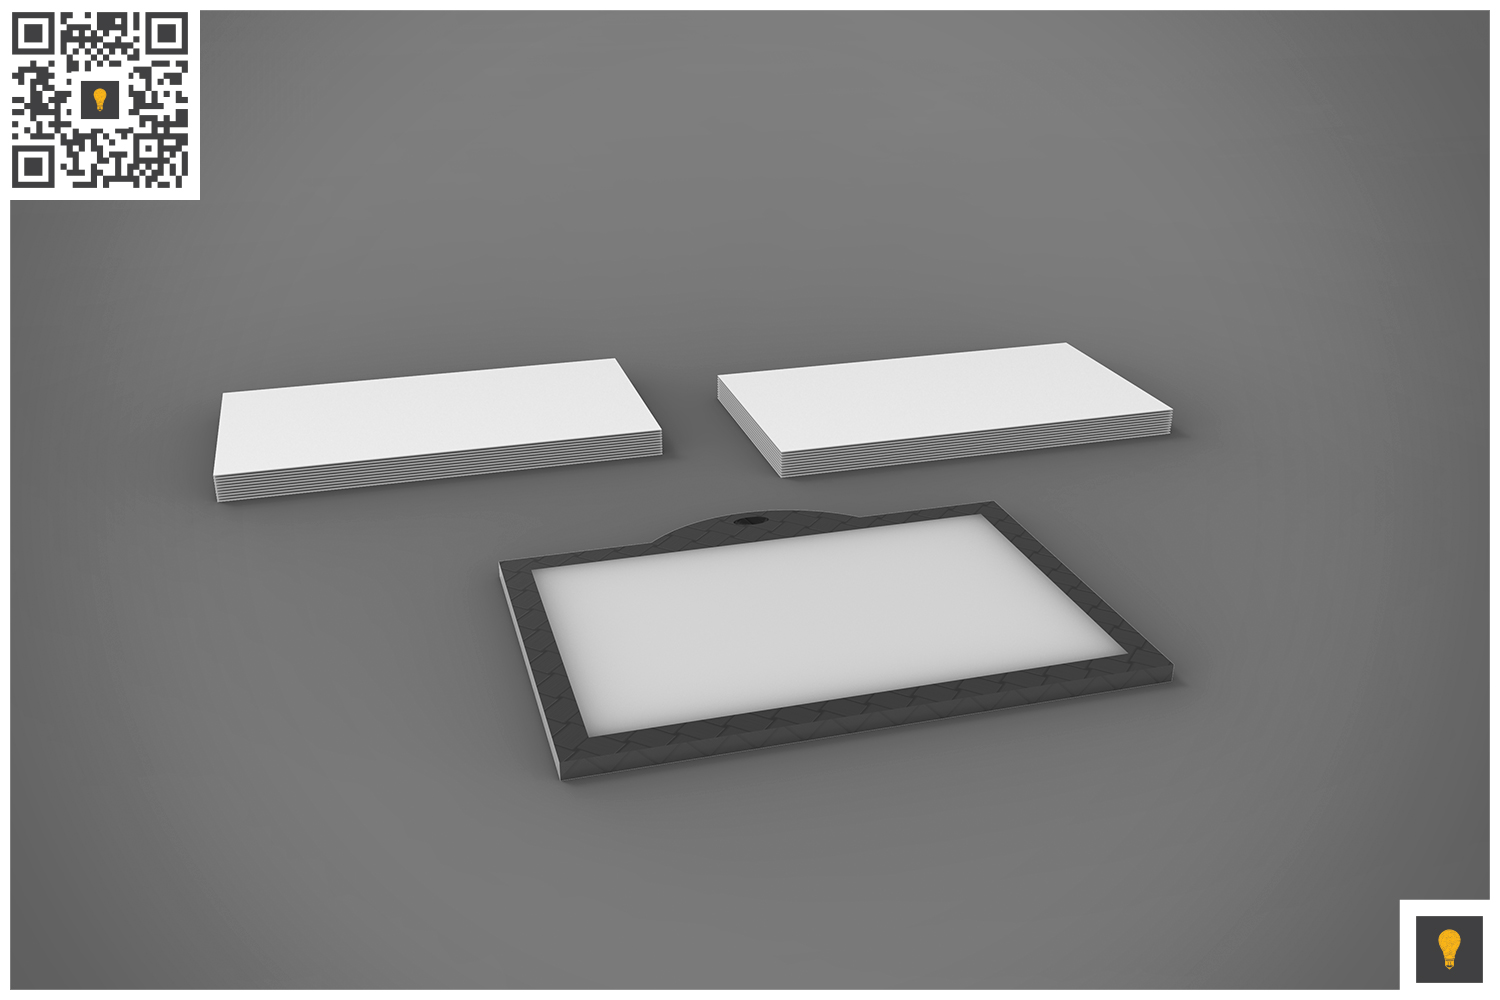 Branding Stationary 3D Render example image 13